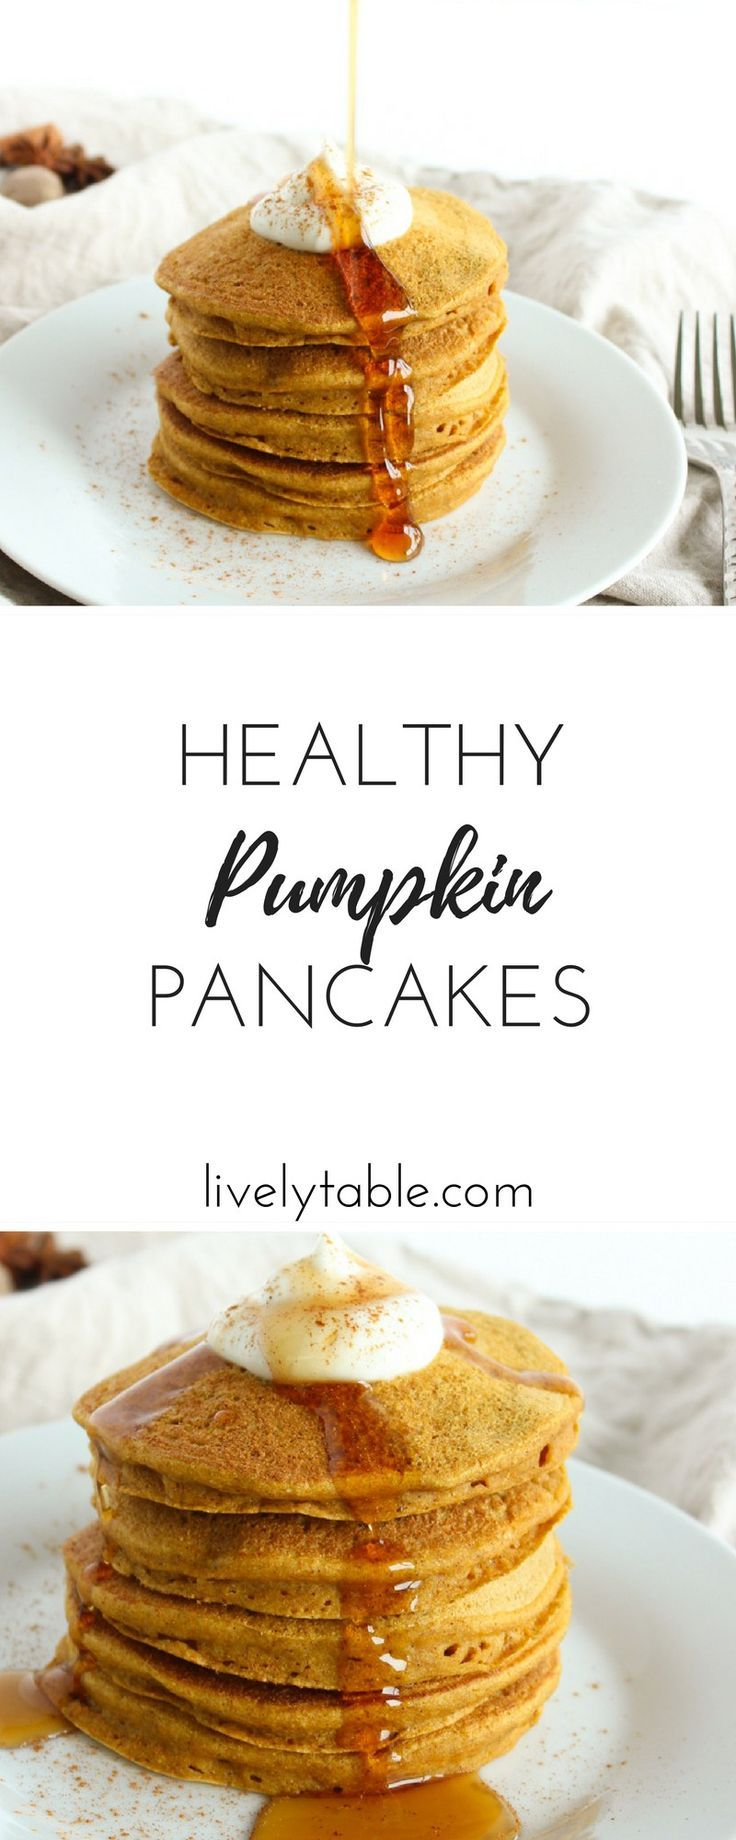 Healthy pumpkin pancakes are the perfect cozy fall breakfast or brunch! Made…